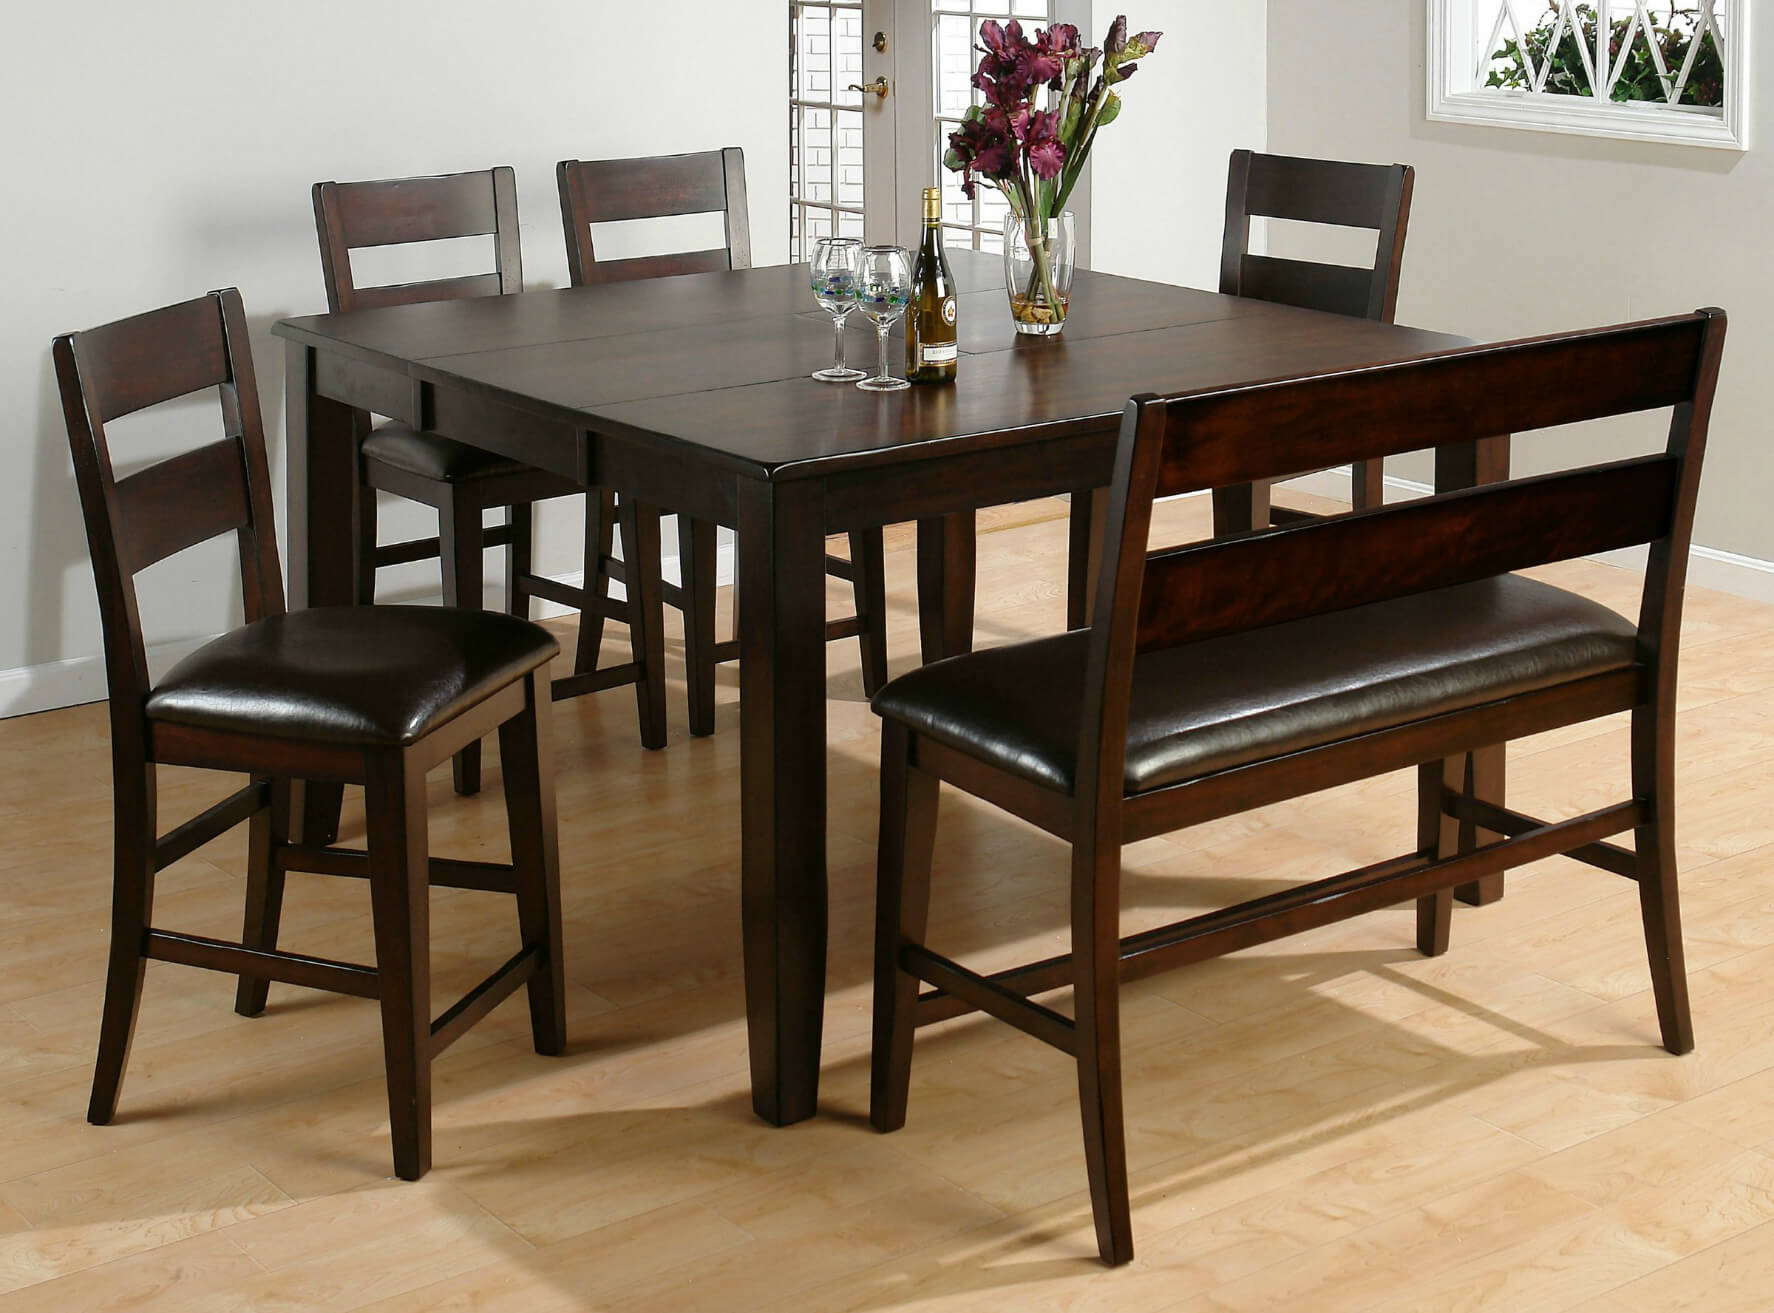 Hereu0027s A Counter Height Square Dining Room Table With Bench. Moreover, The  Bench Includes